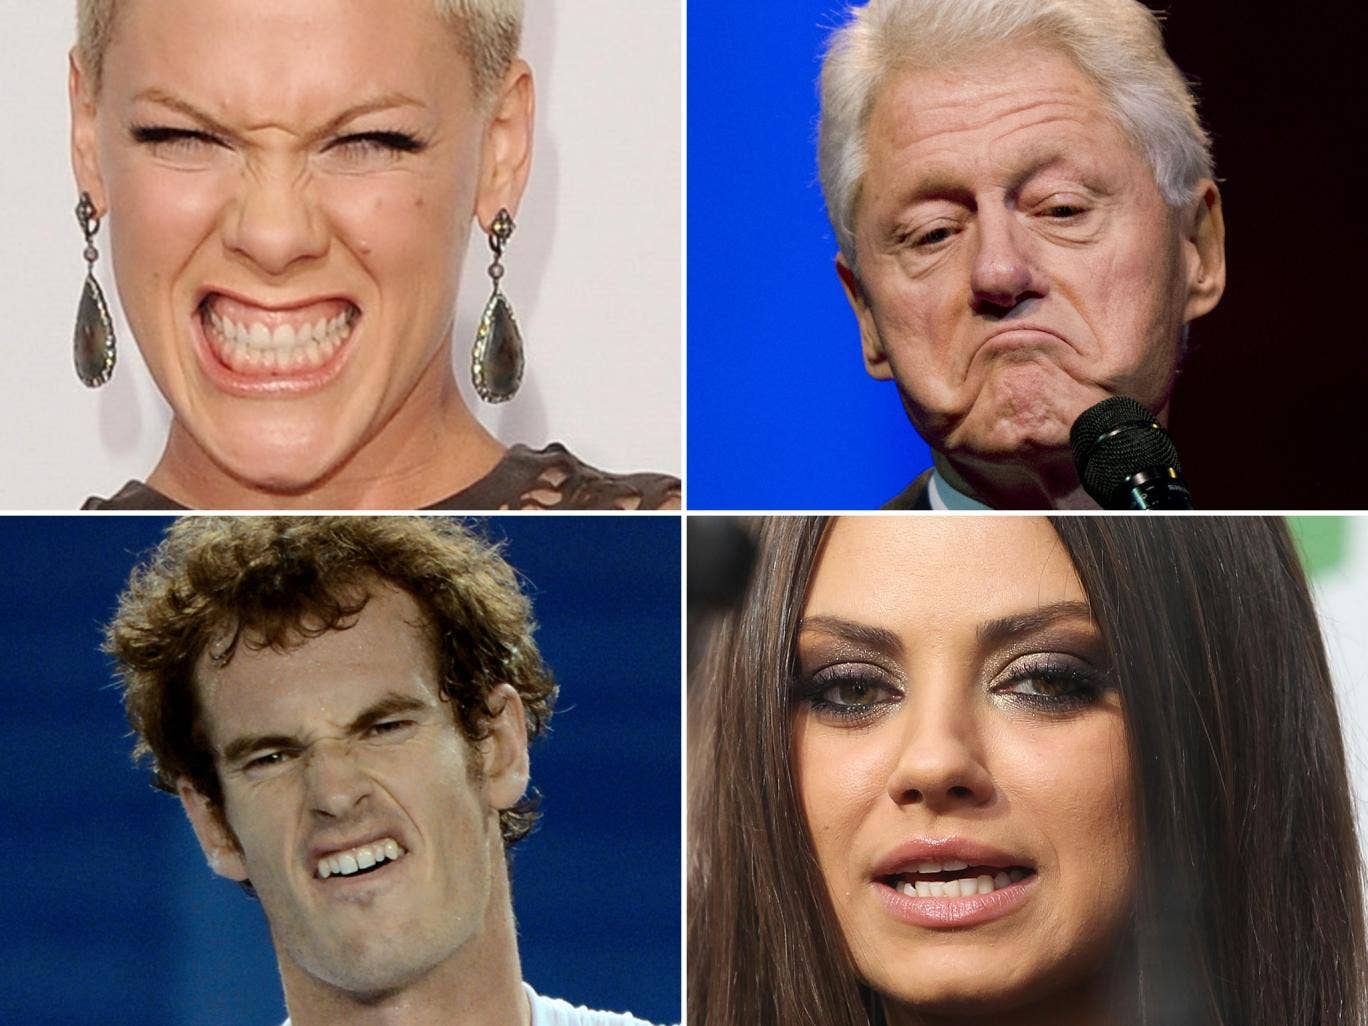 Beautiful people are seen as good looking even if they distort their faces into grimaces of disgust, surprise, fear or anger - or that's the theory. Judge for yourself with Pink, Bill Clinton, And Murray and Mila Kunis